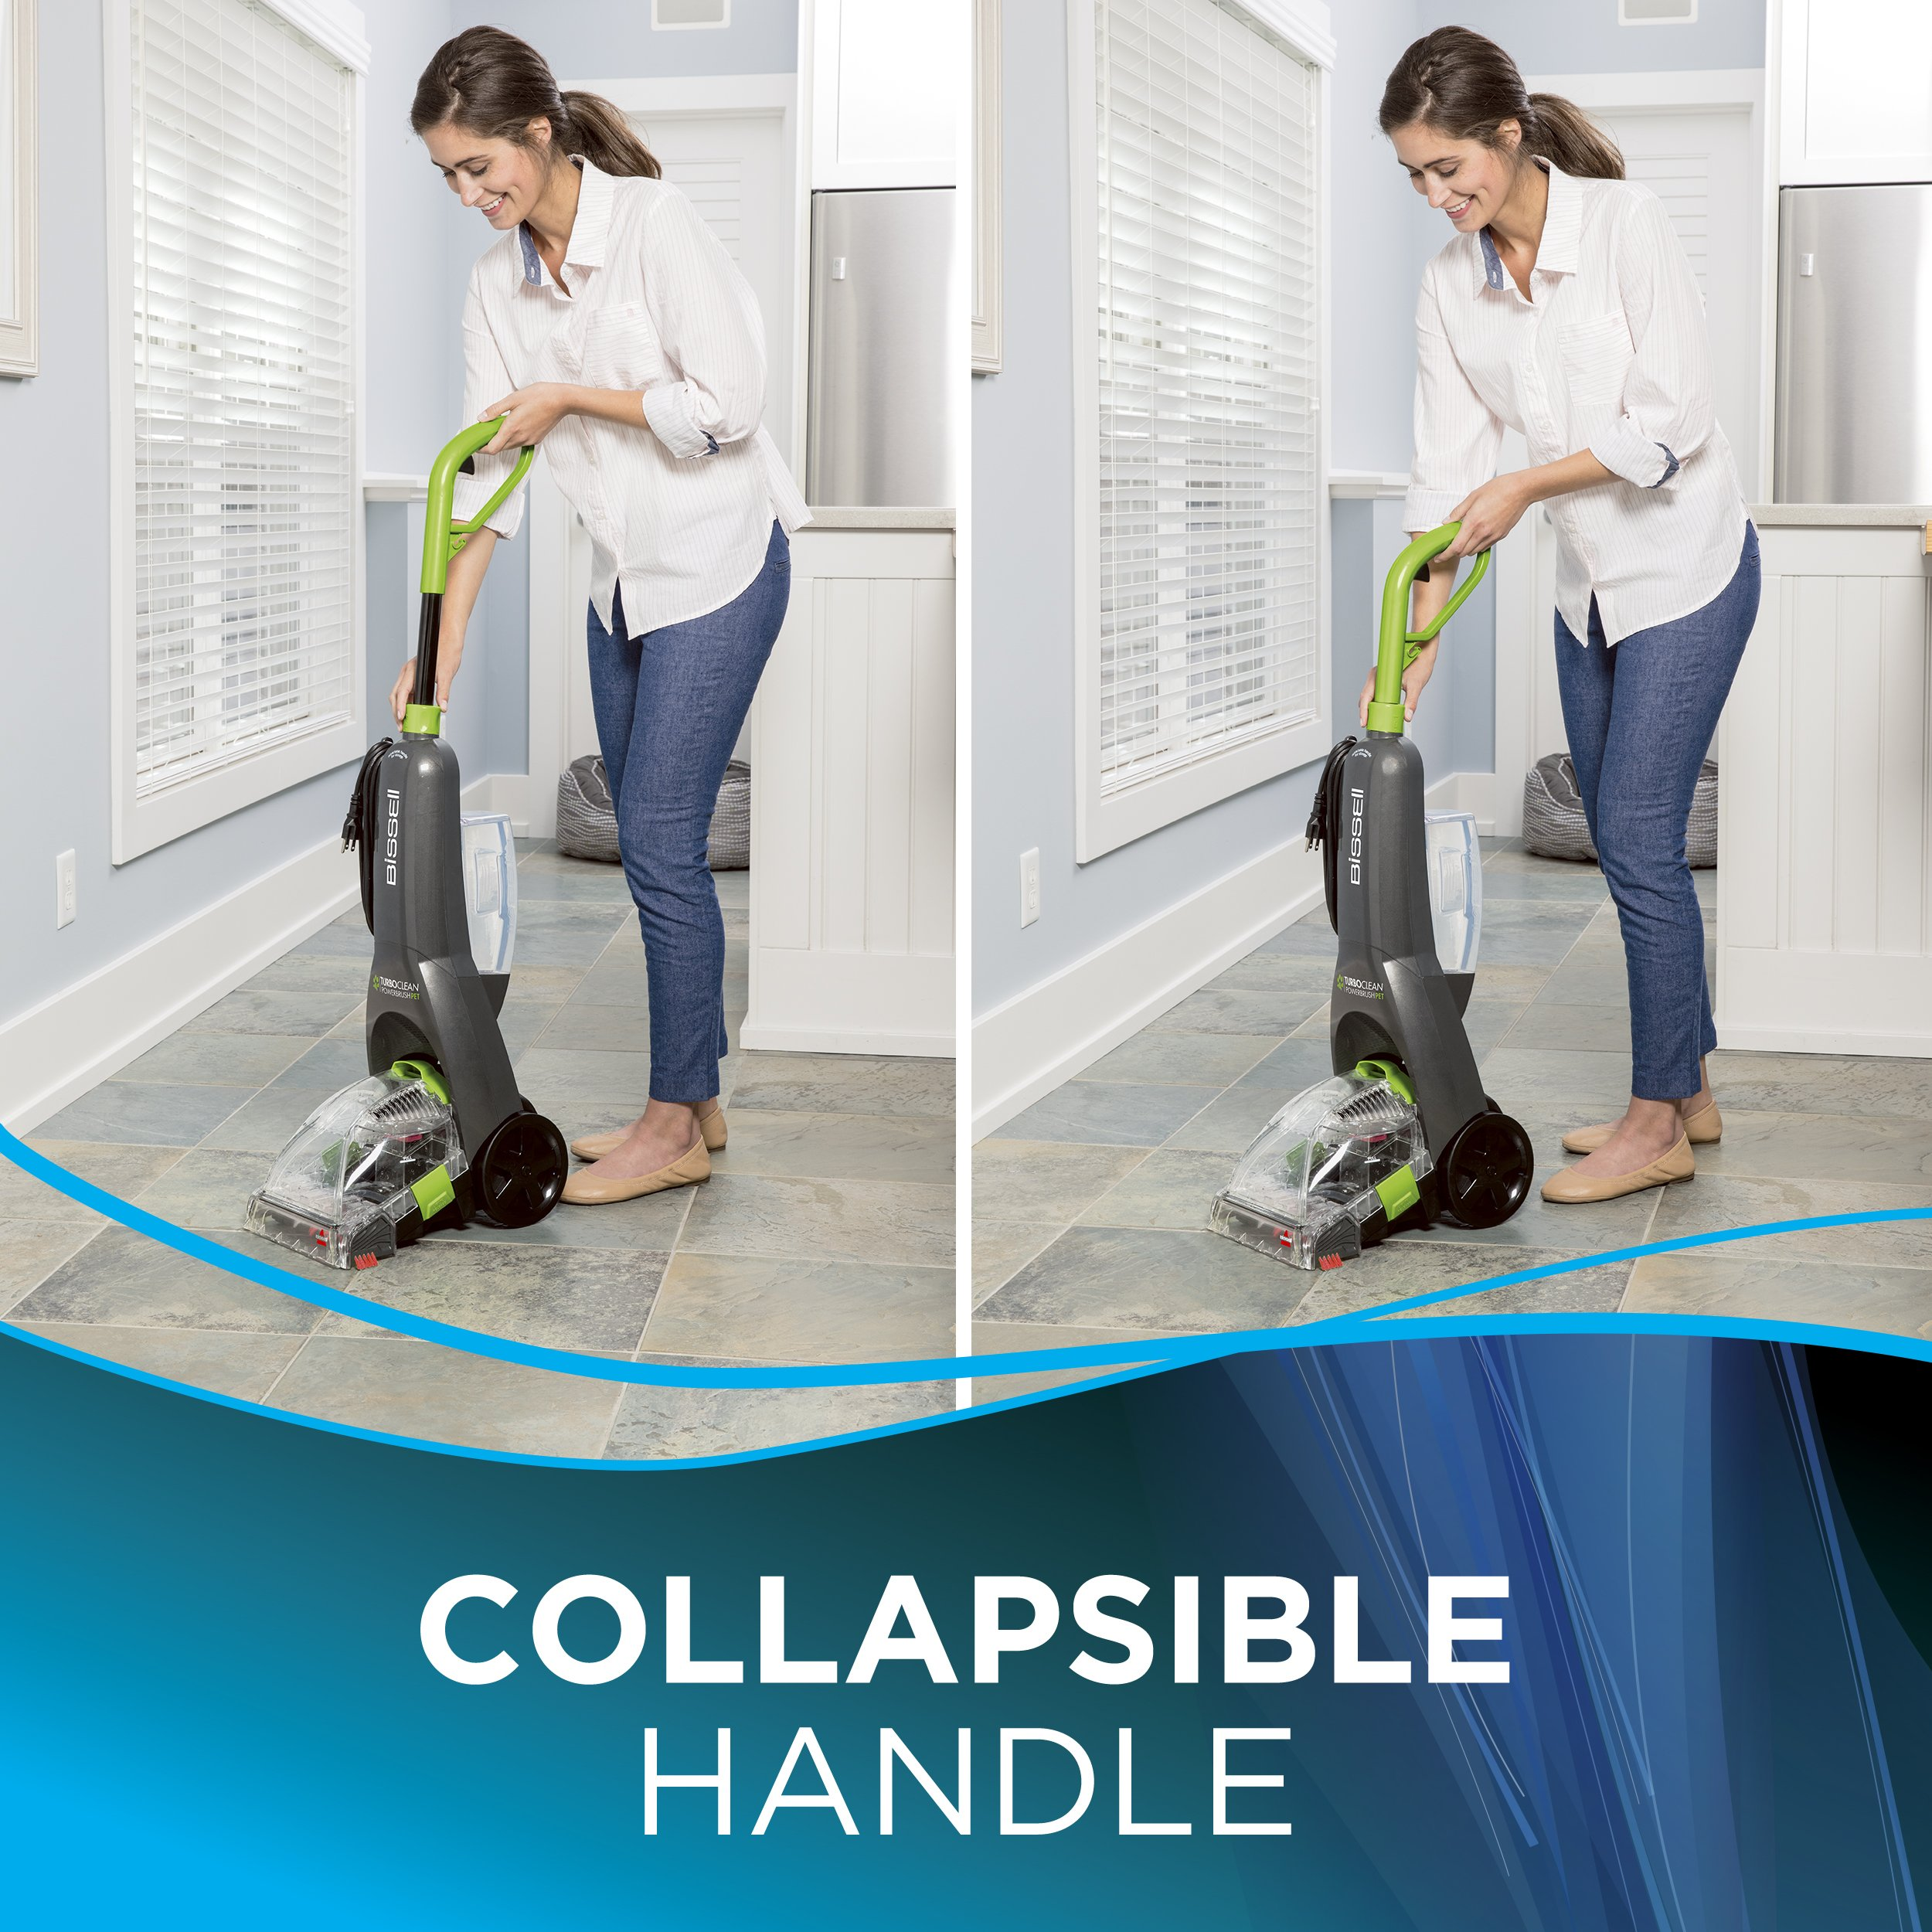 BISSELL Turboclean Powerbrush Pet Upright Carpet Cleaner Machine and Carpet Shampooer, 2085 by Bissell (Image #6)